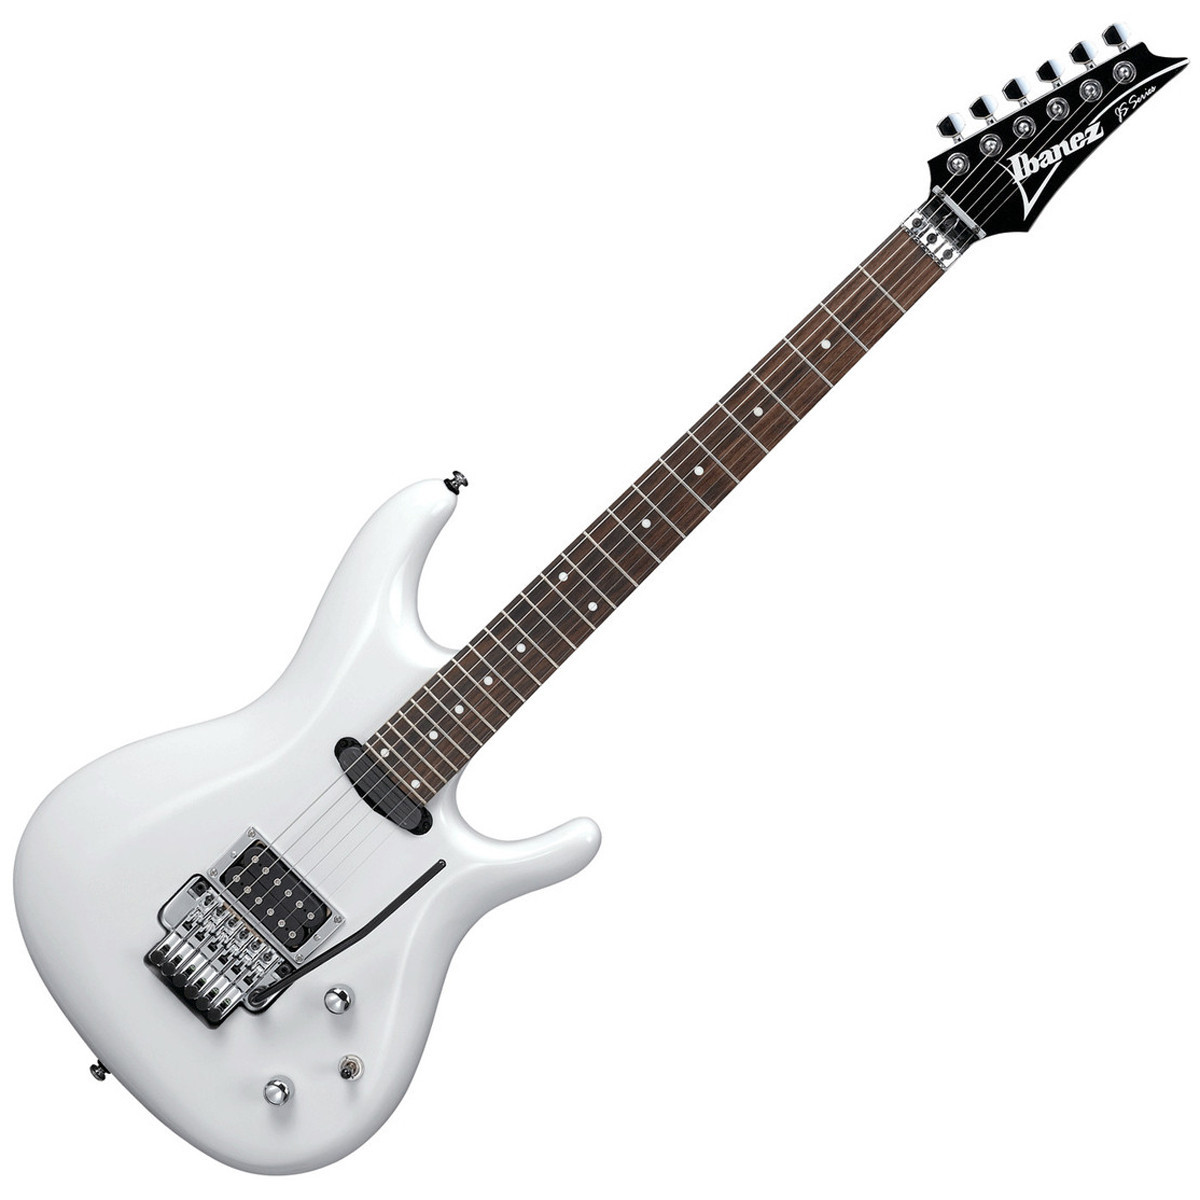 Ibanez Joe Satriani JS140 Signature Electric Guitar, White ...